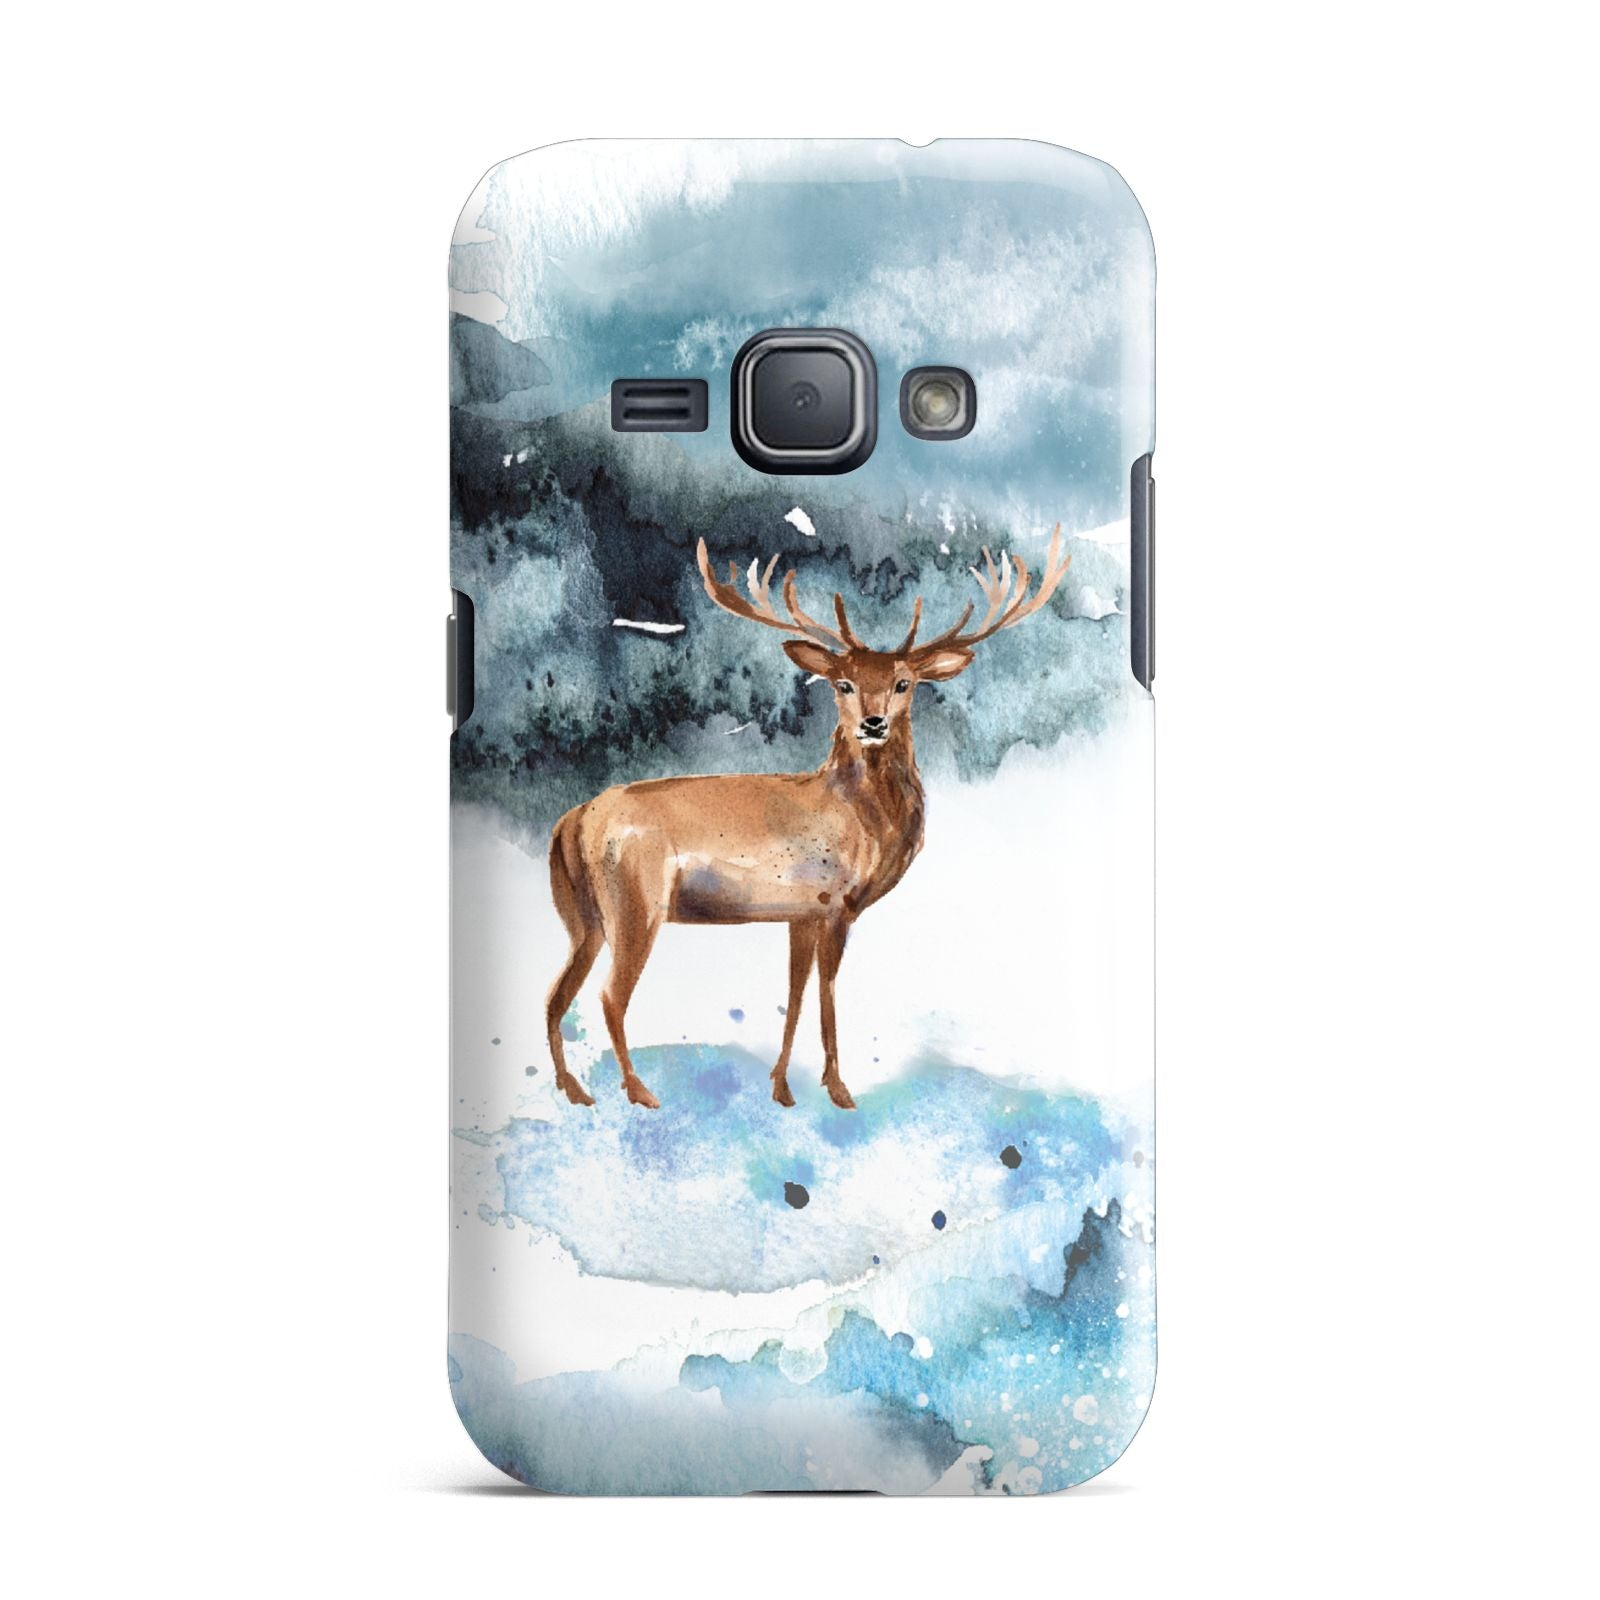 Christmas Winter Stag Samsung Galaxy J1 2016 Case